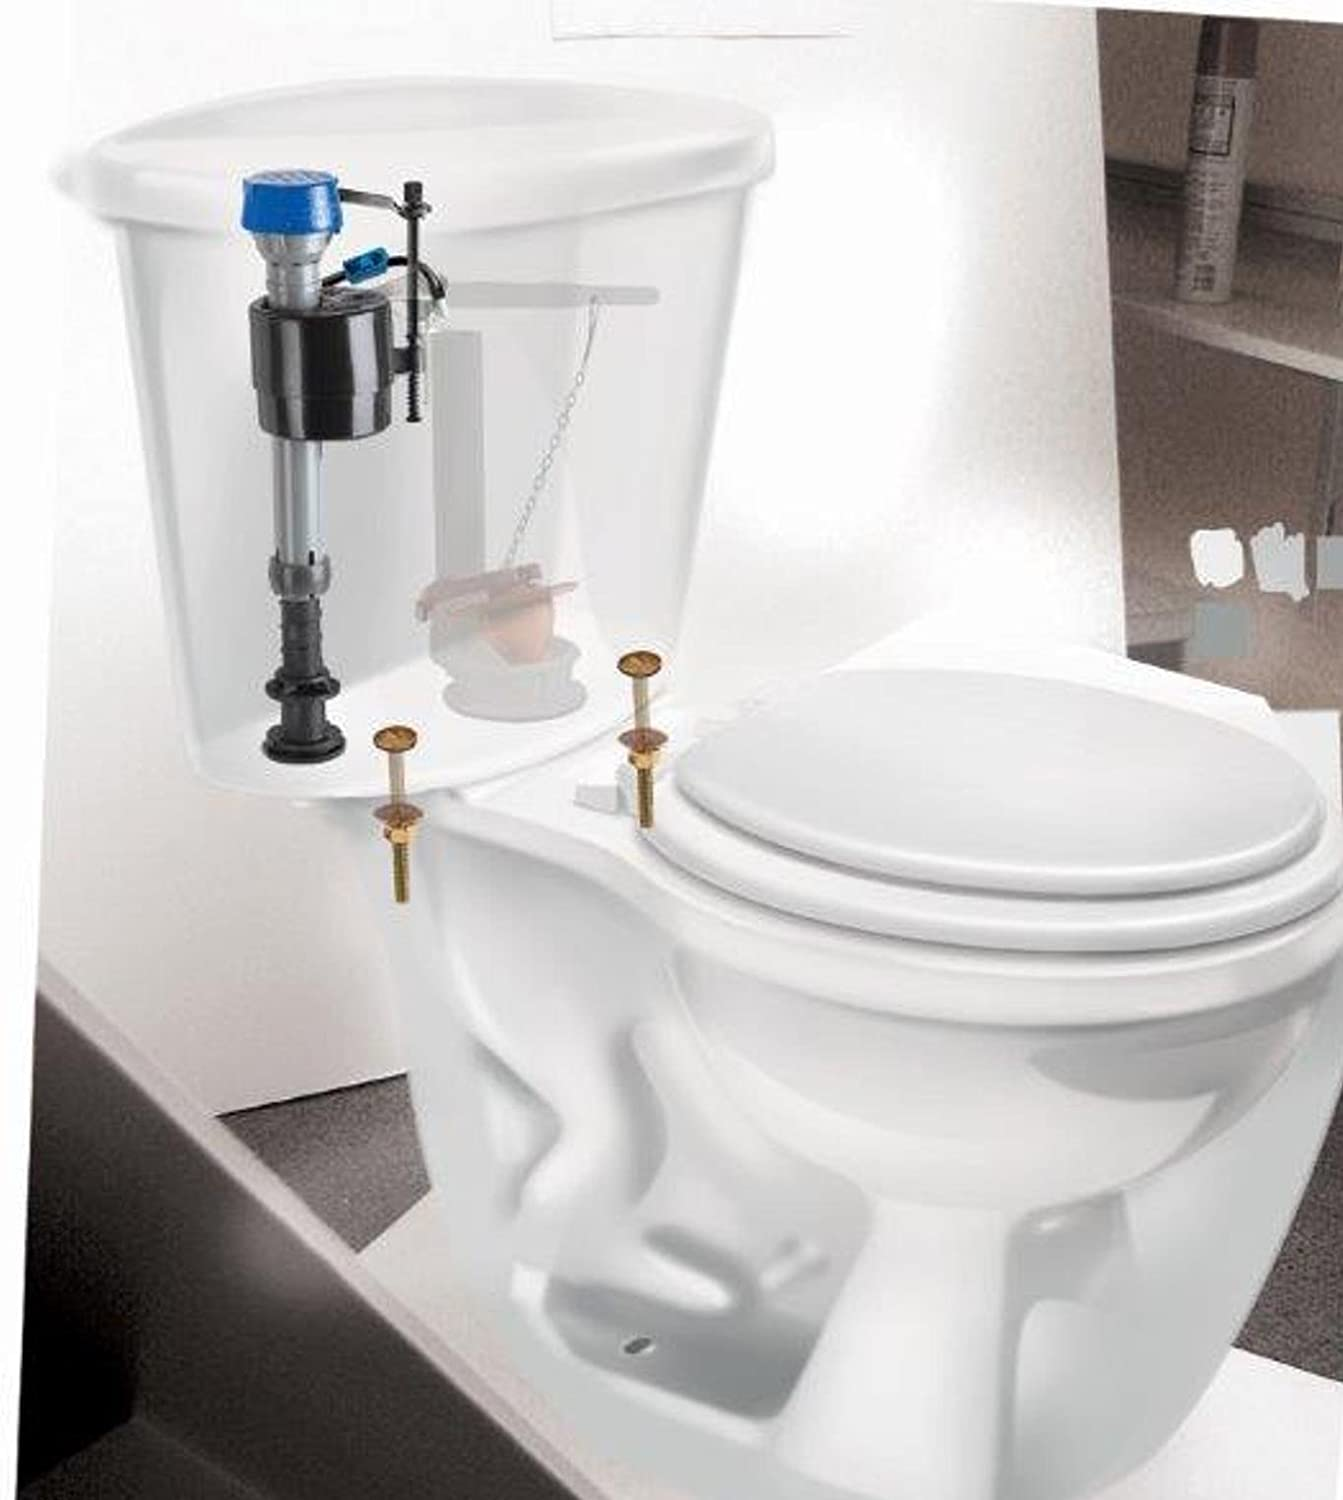 fluidmaster 400arhr high performance toilet fill valve. Black Bedroom Furniture Sets. Home Design Ideas